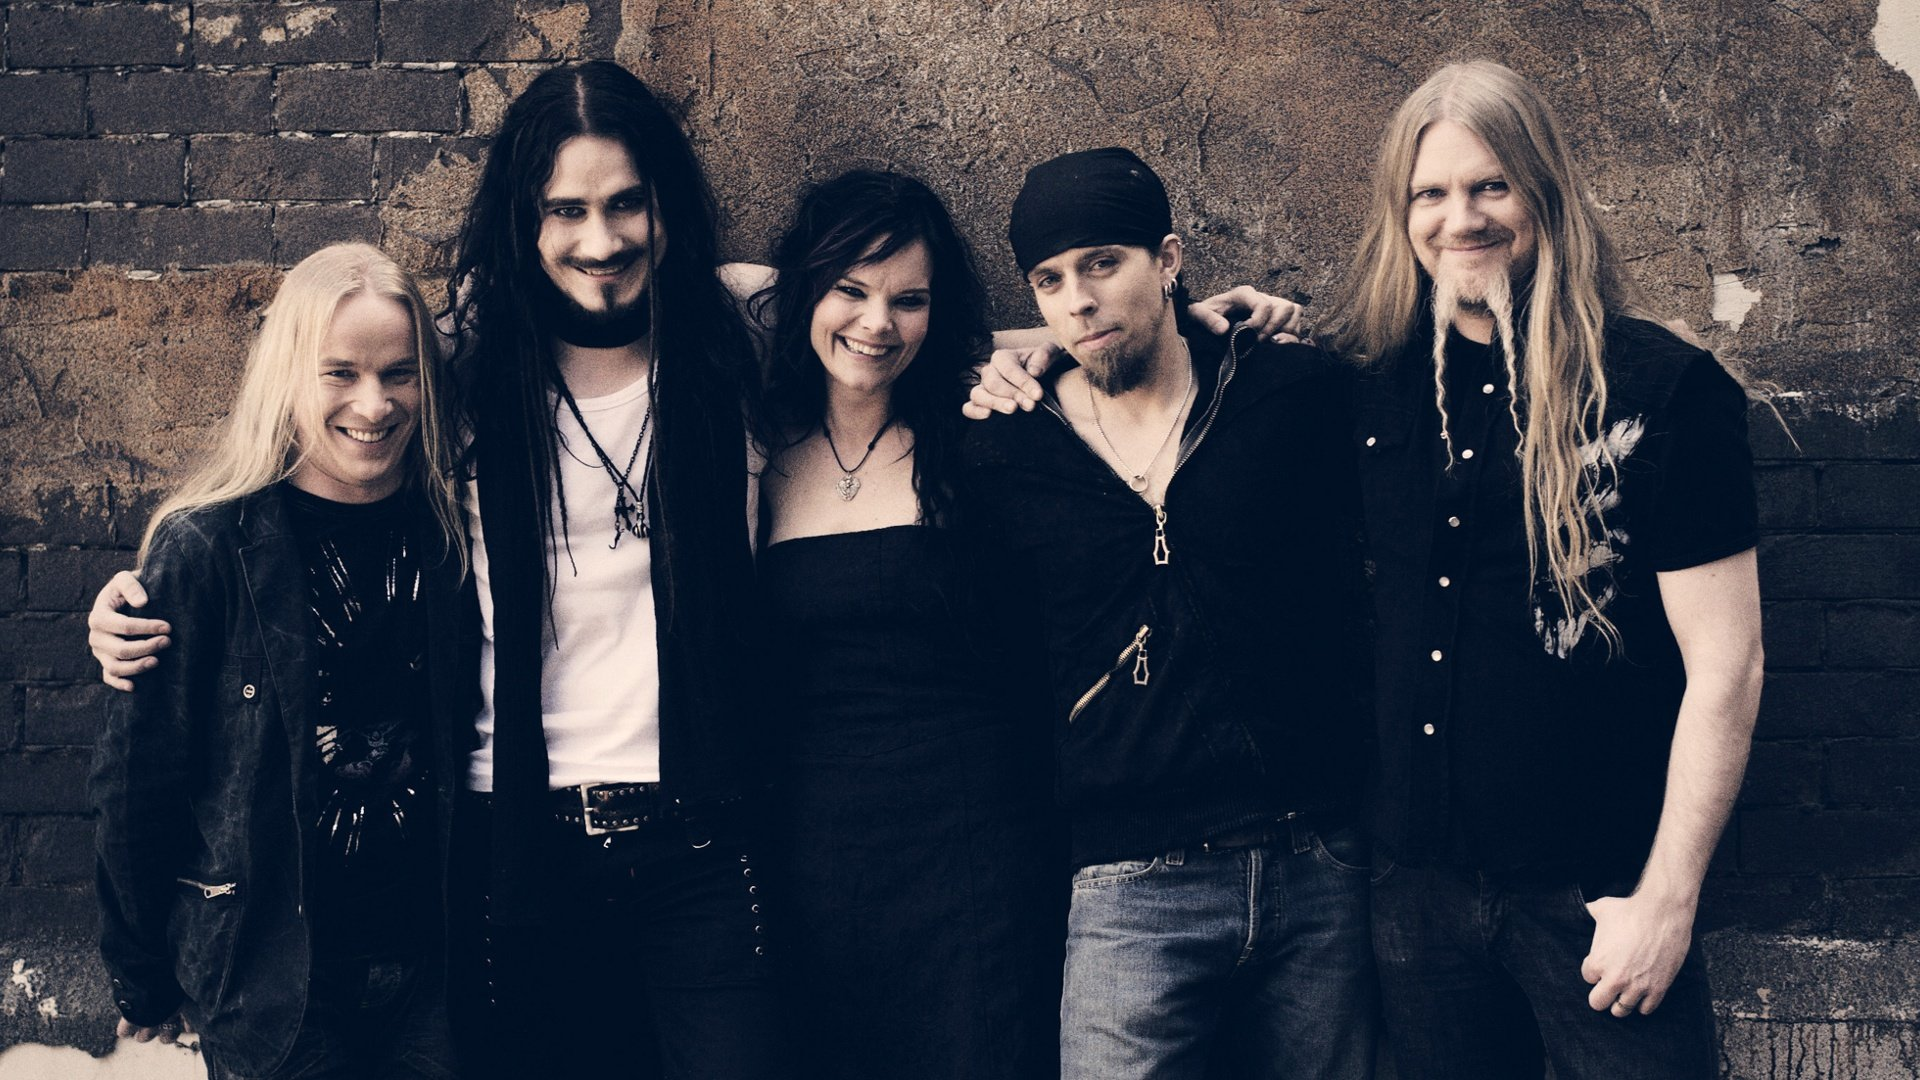 Download hd 1920x1080 Nightwish PC background ID:87623 for free